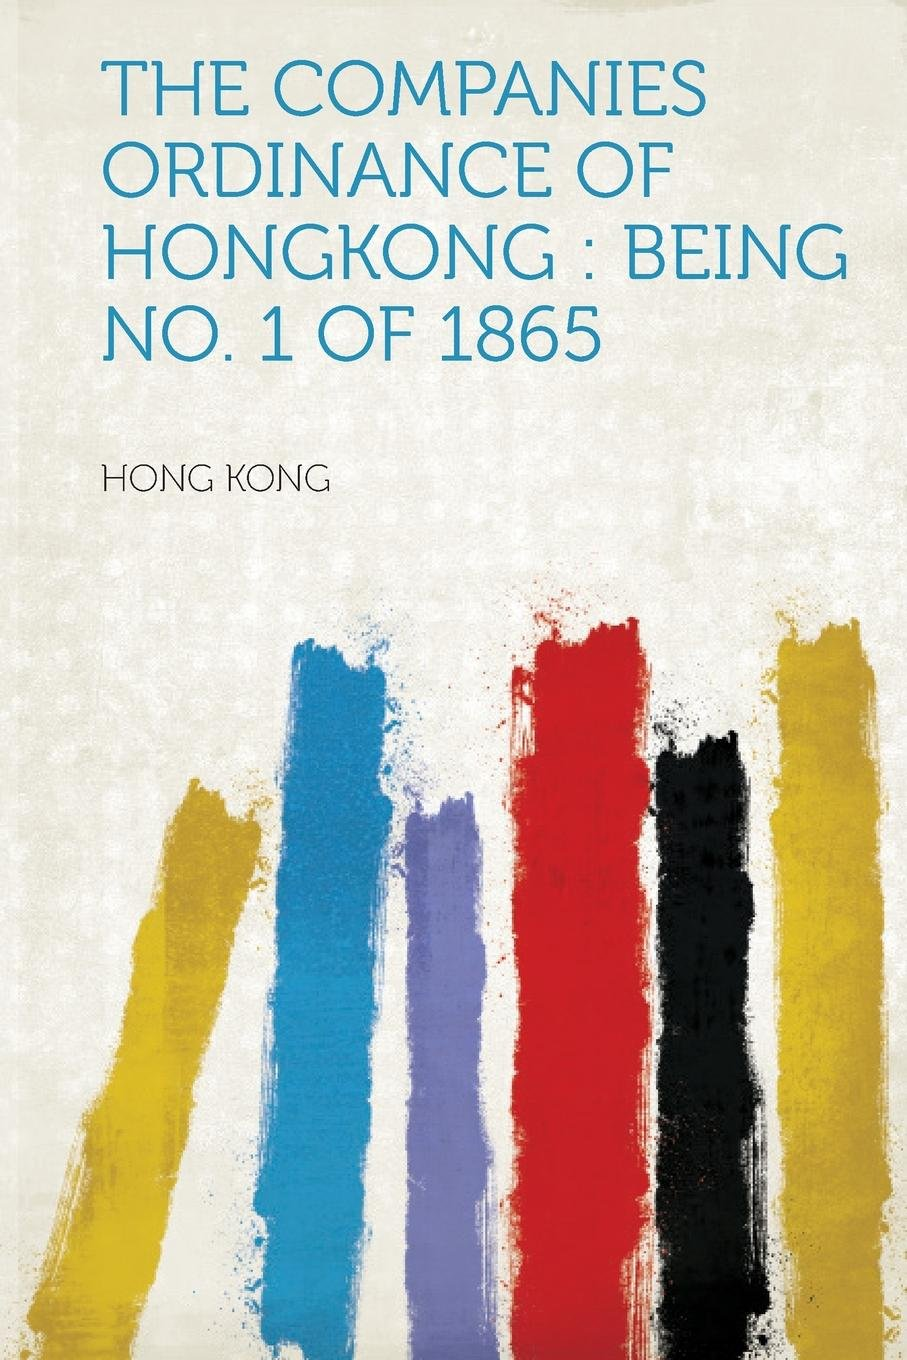 The Companies Ordinance of Hongkong: Being No. 1 of 1865 pdf epub